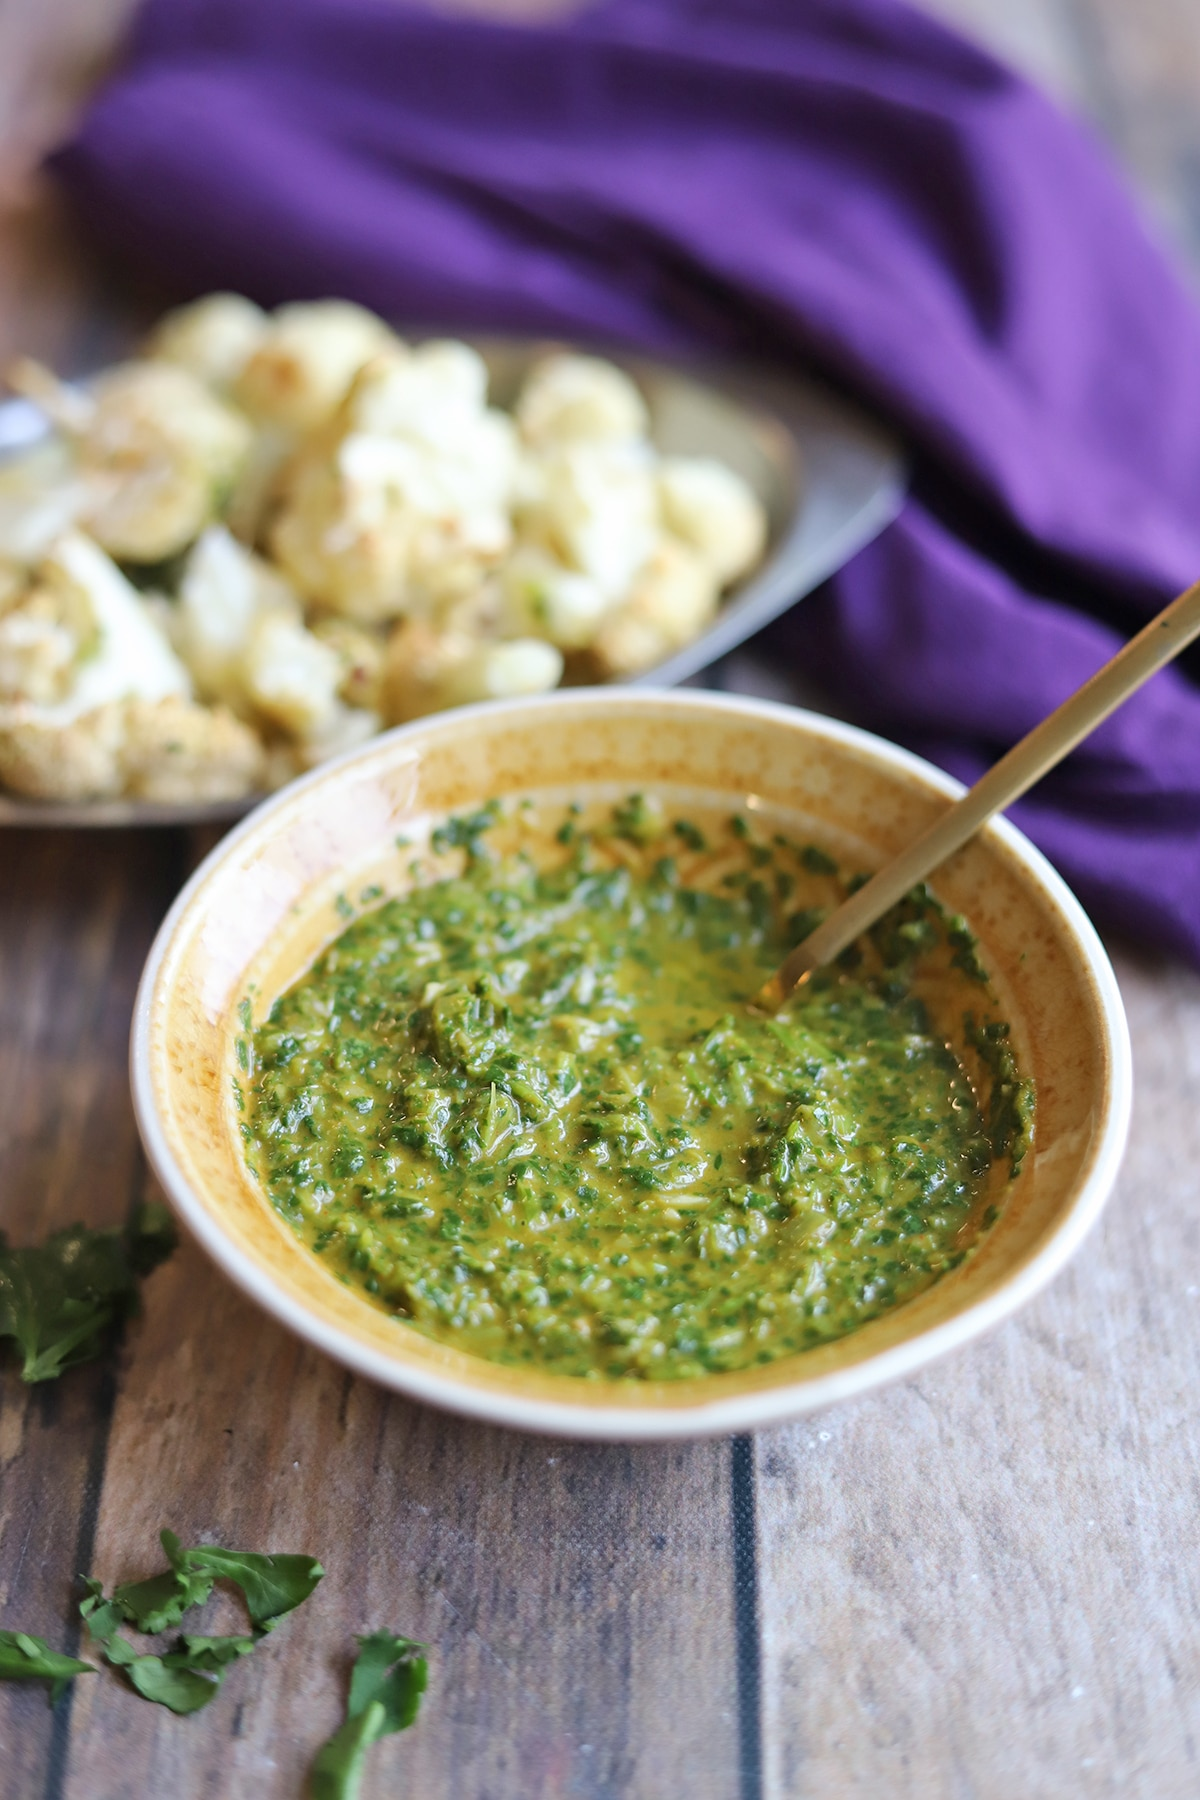 Bowl of chimichurri sauce by cauliflower florets.